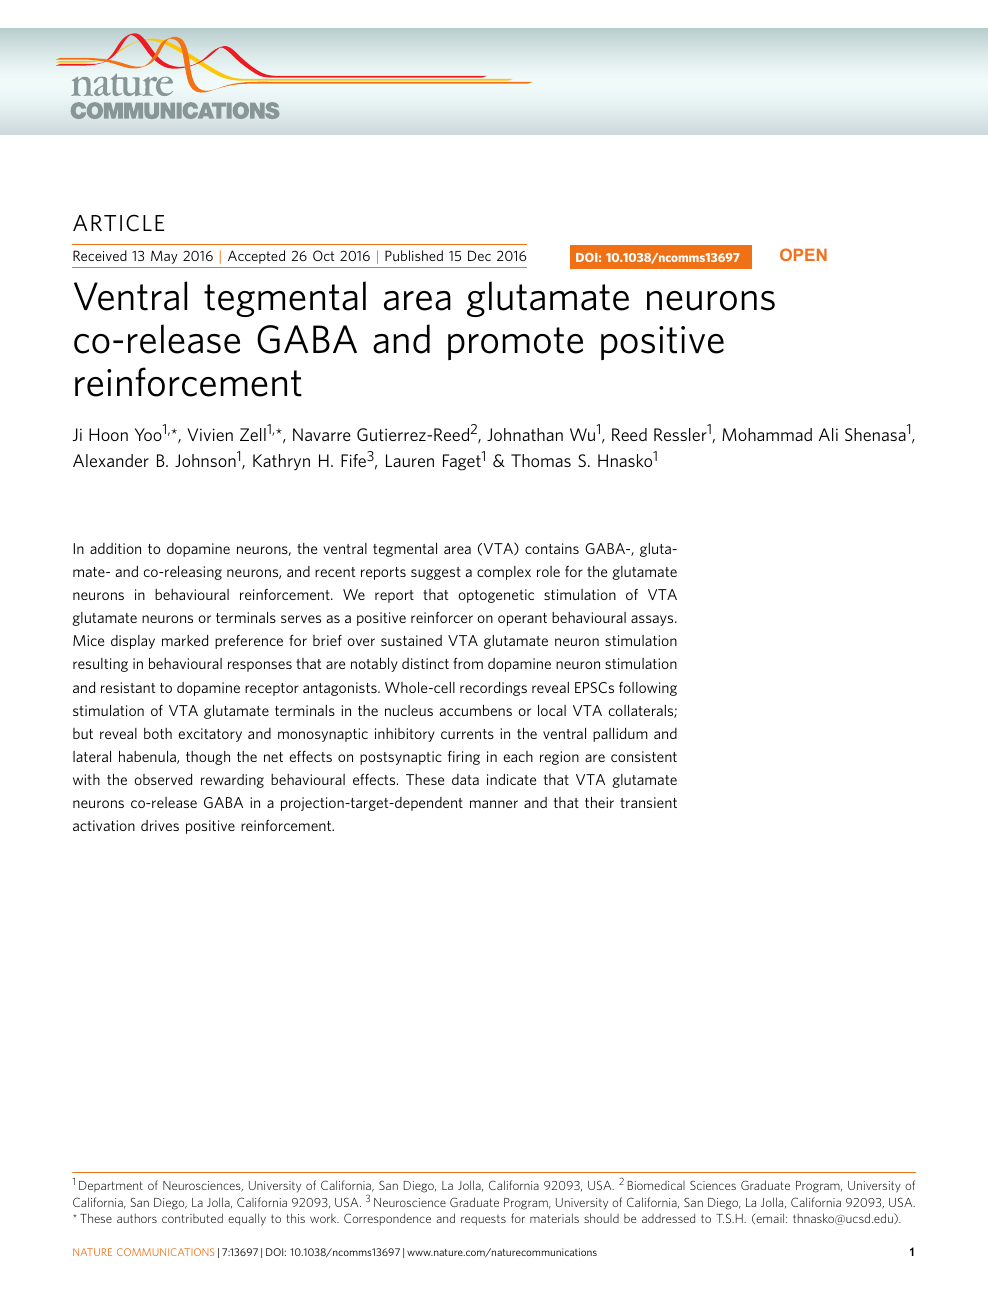 Ventral tegmental area glutamate neurons co-release GABA and